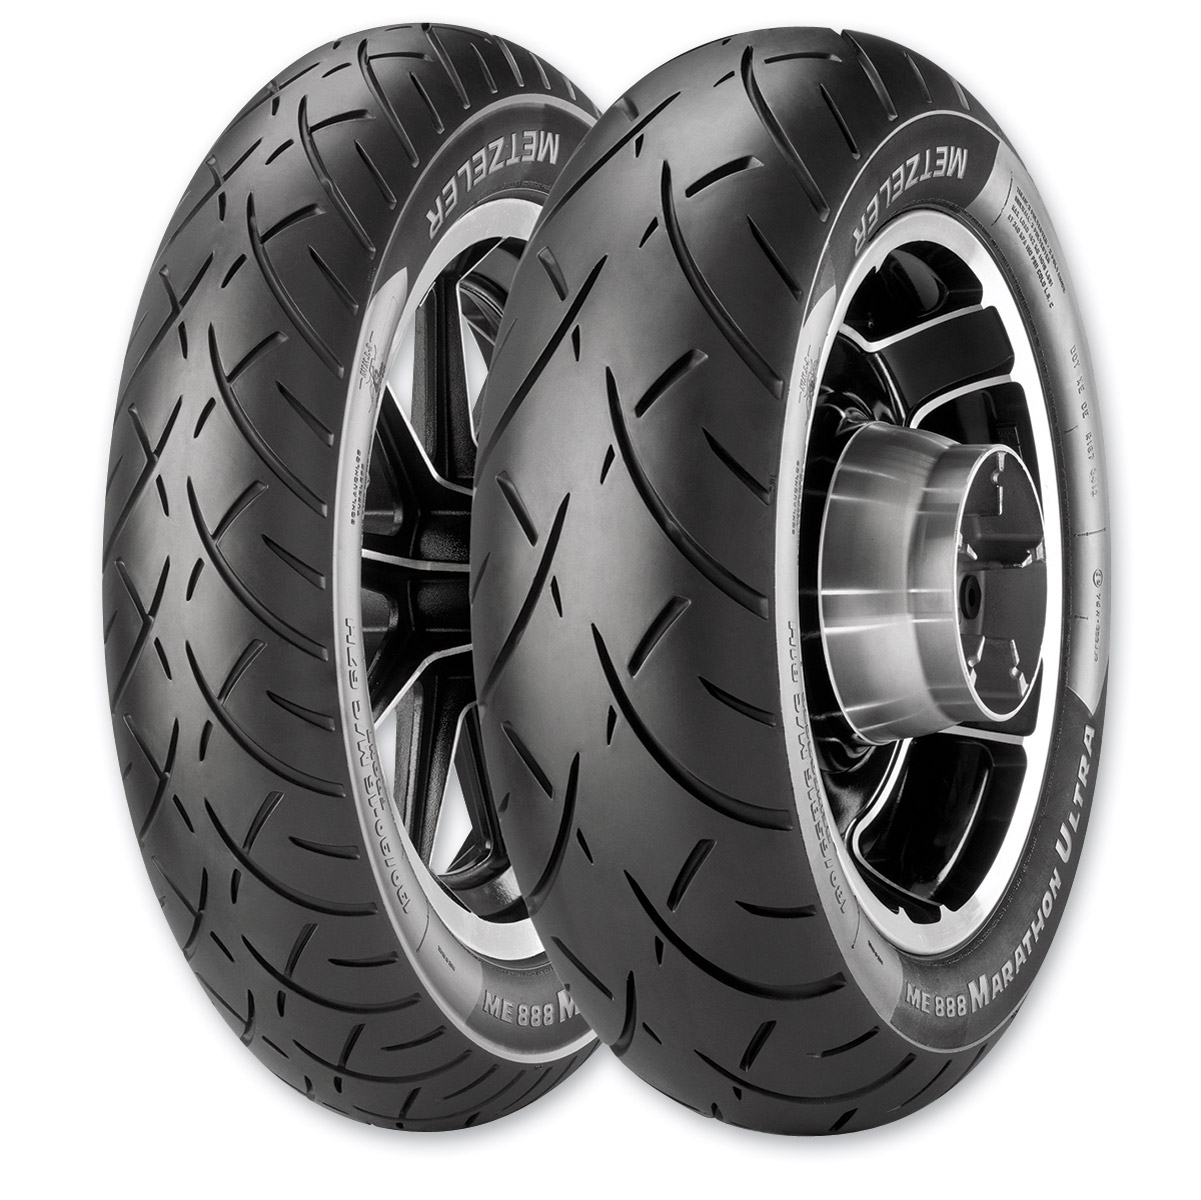 Metzeler ME888 MU85B16 Rear Tire